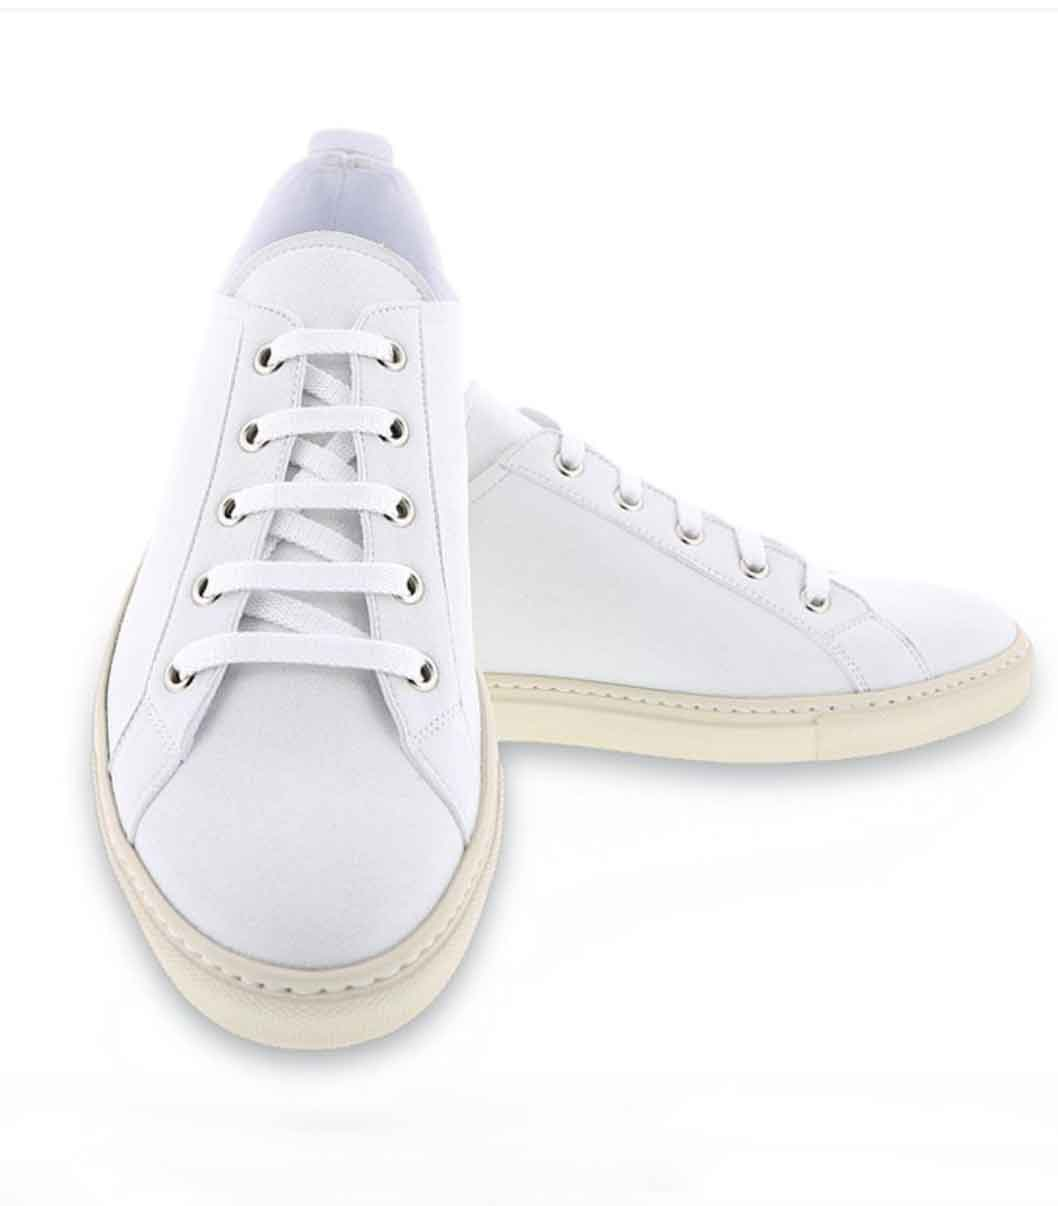 NOAH ITALIAN VEGAN SHOES ECOLOOKBOOK WHITE SUSTAINABLE SNEAKERS